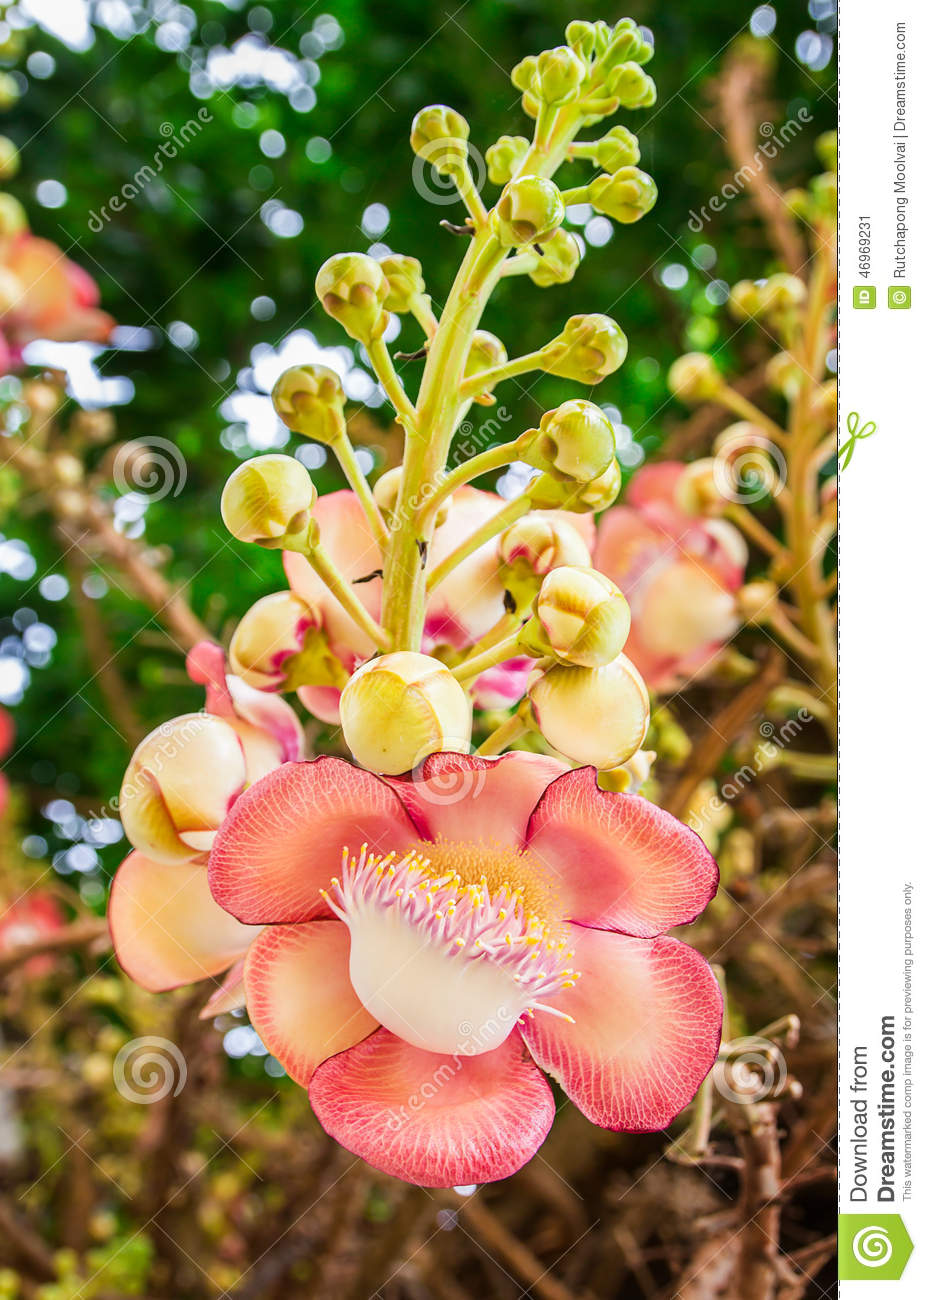 Beautiful Round White Magenta Color Flower Of Cannon Ball Tree.